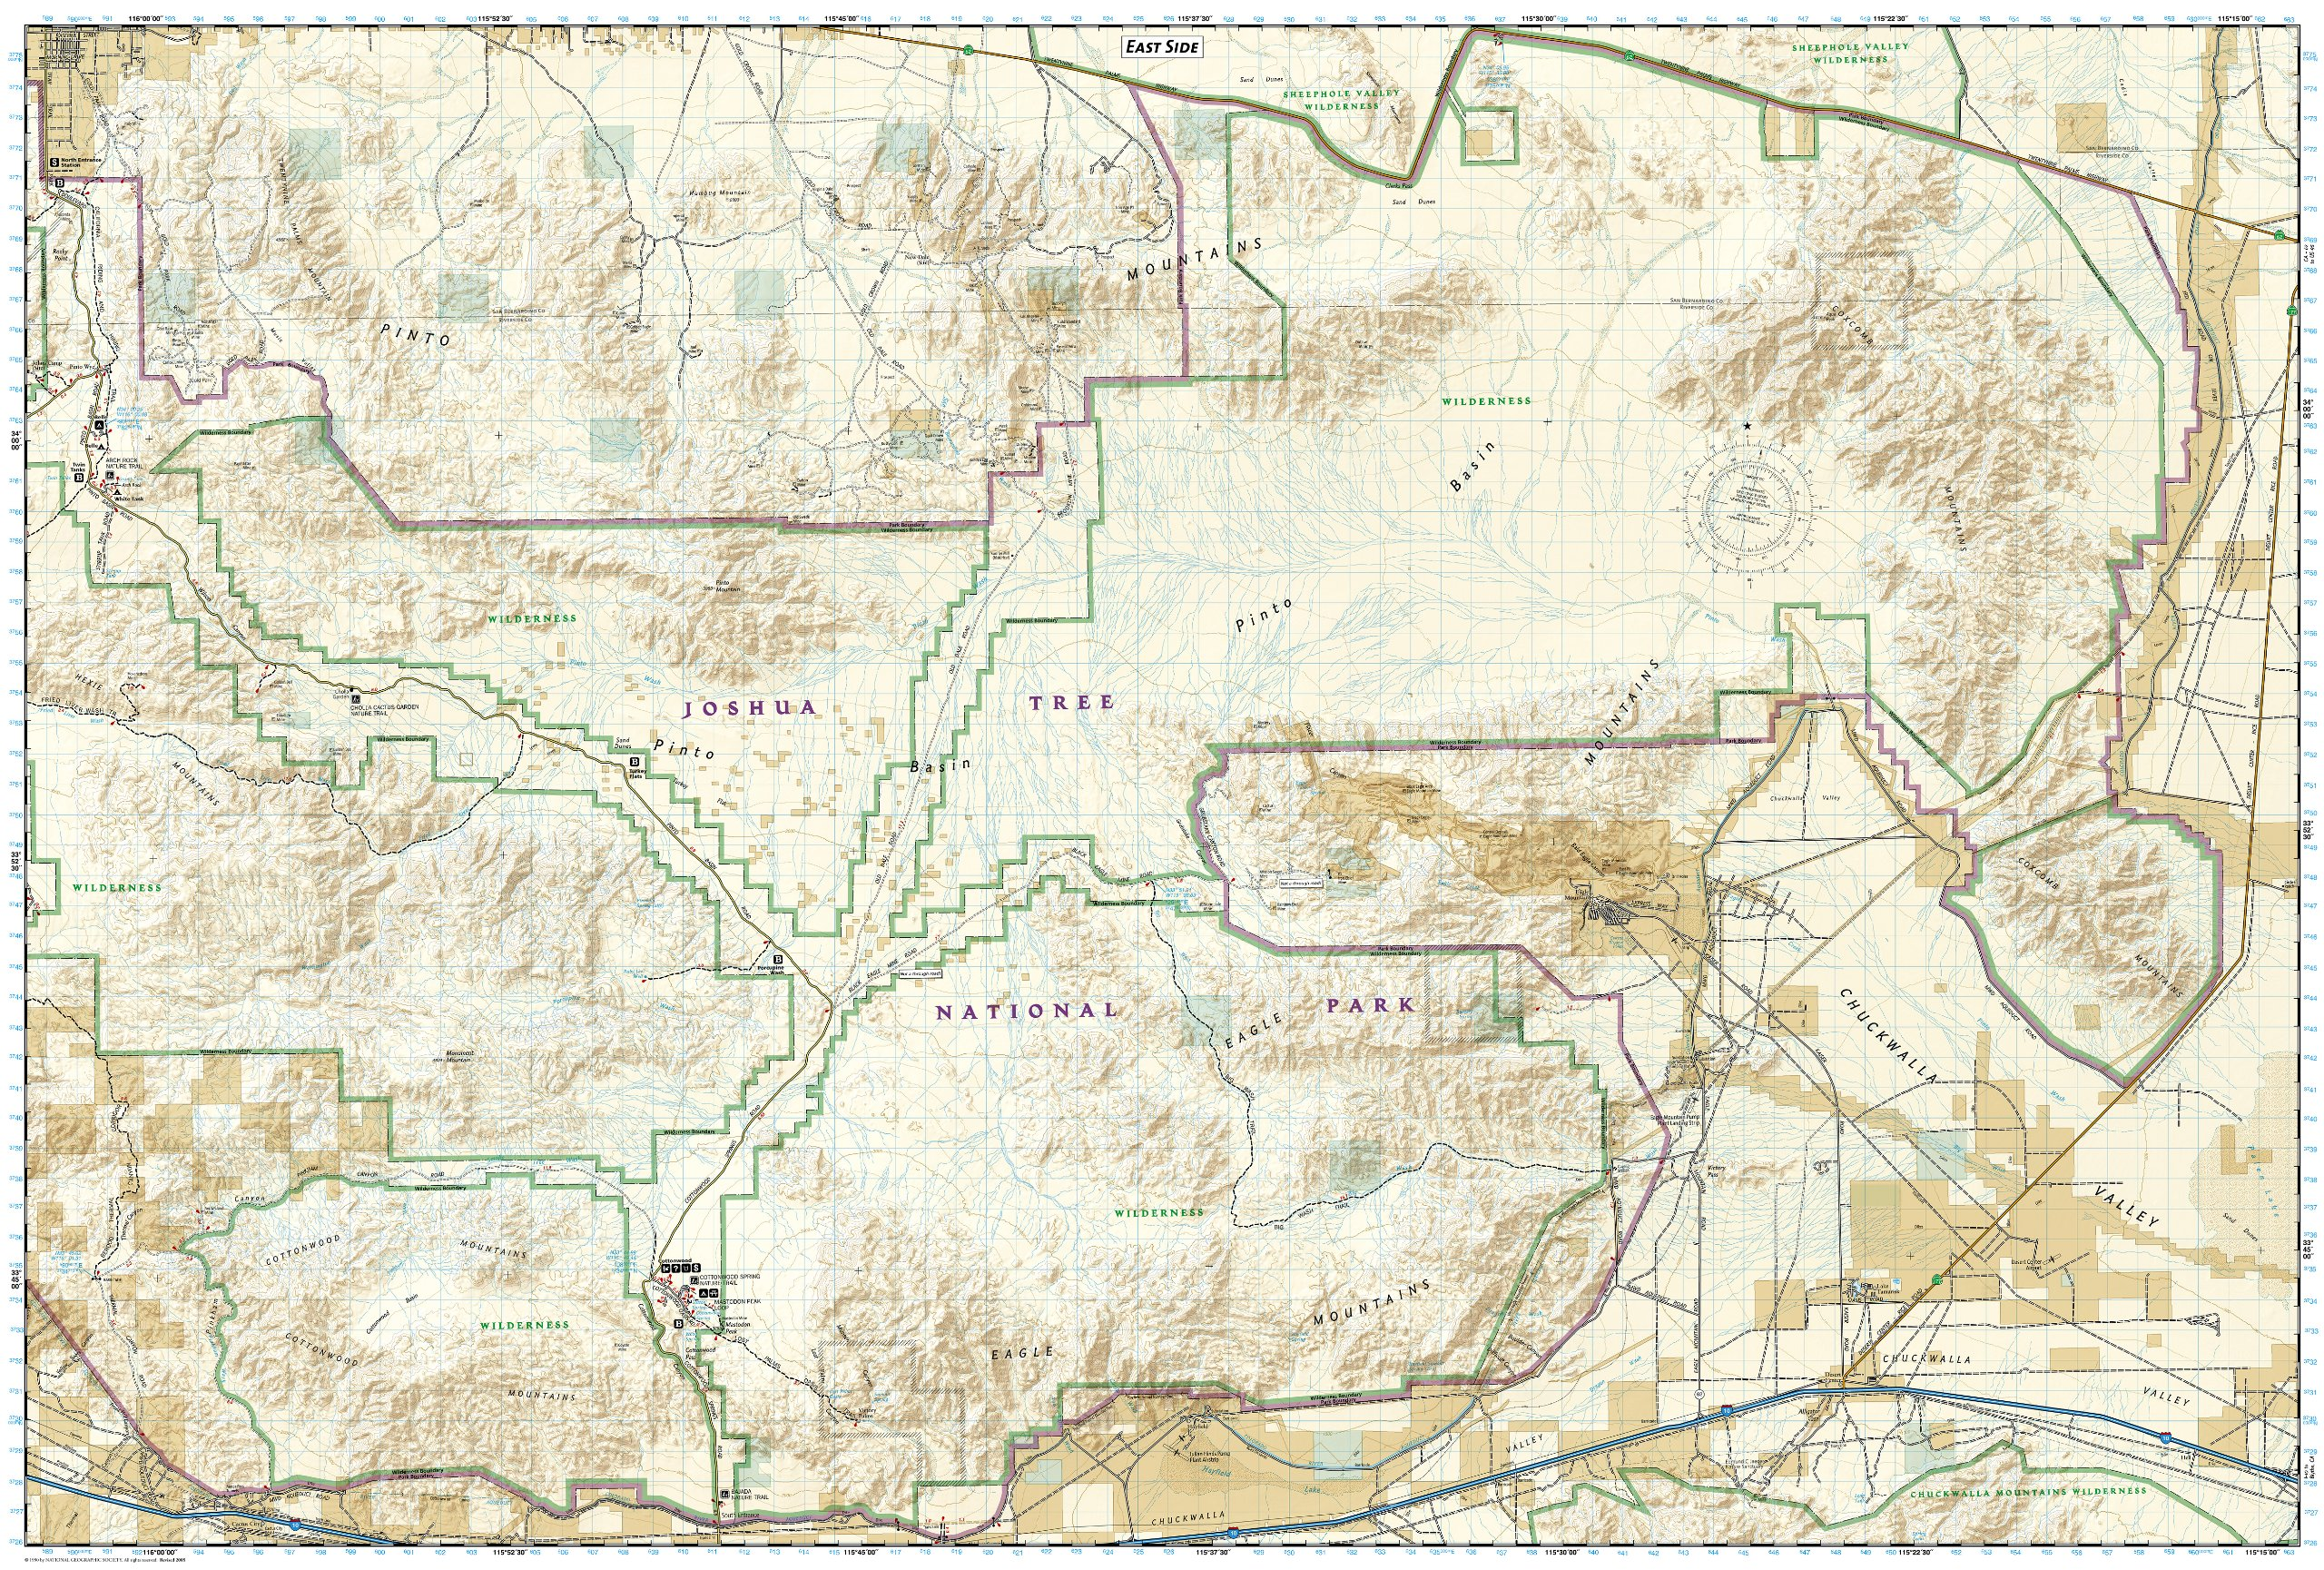 Joshua Tree Topographic Map.Joshua Tree National Park National Geographic Trails Illustrated